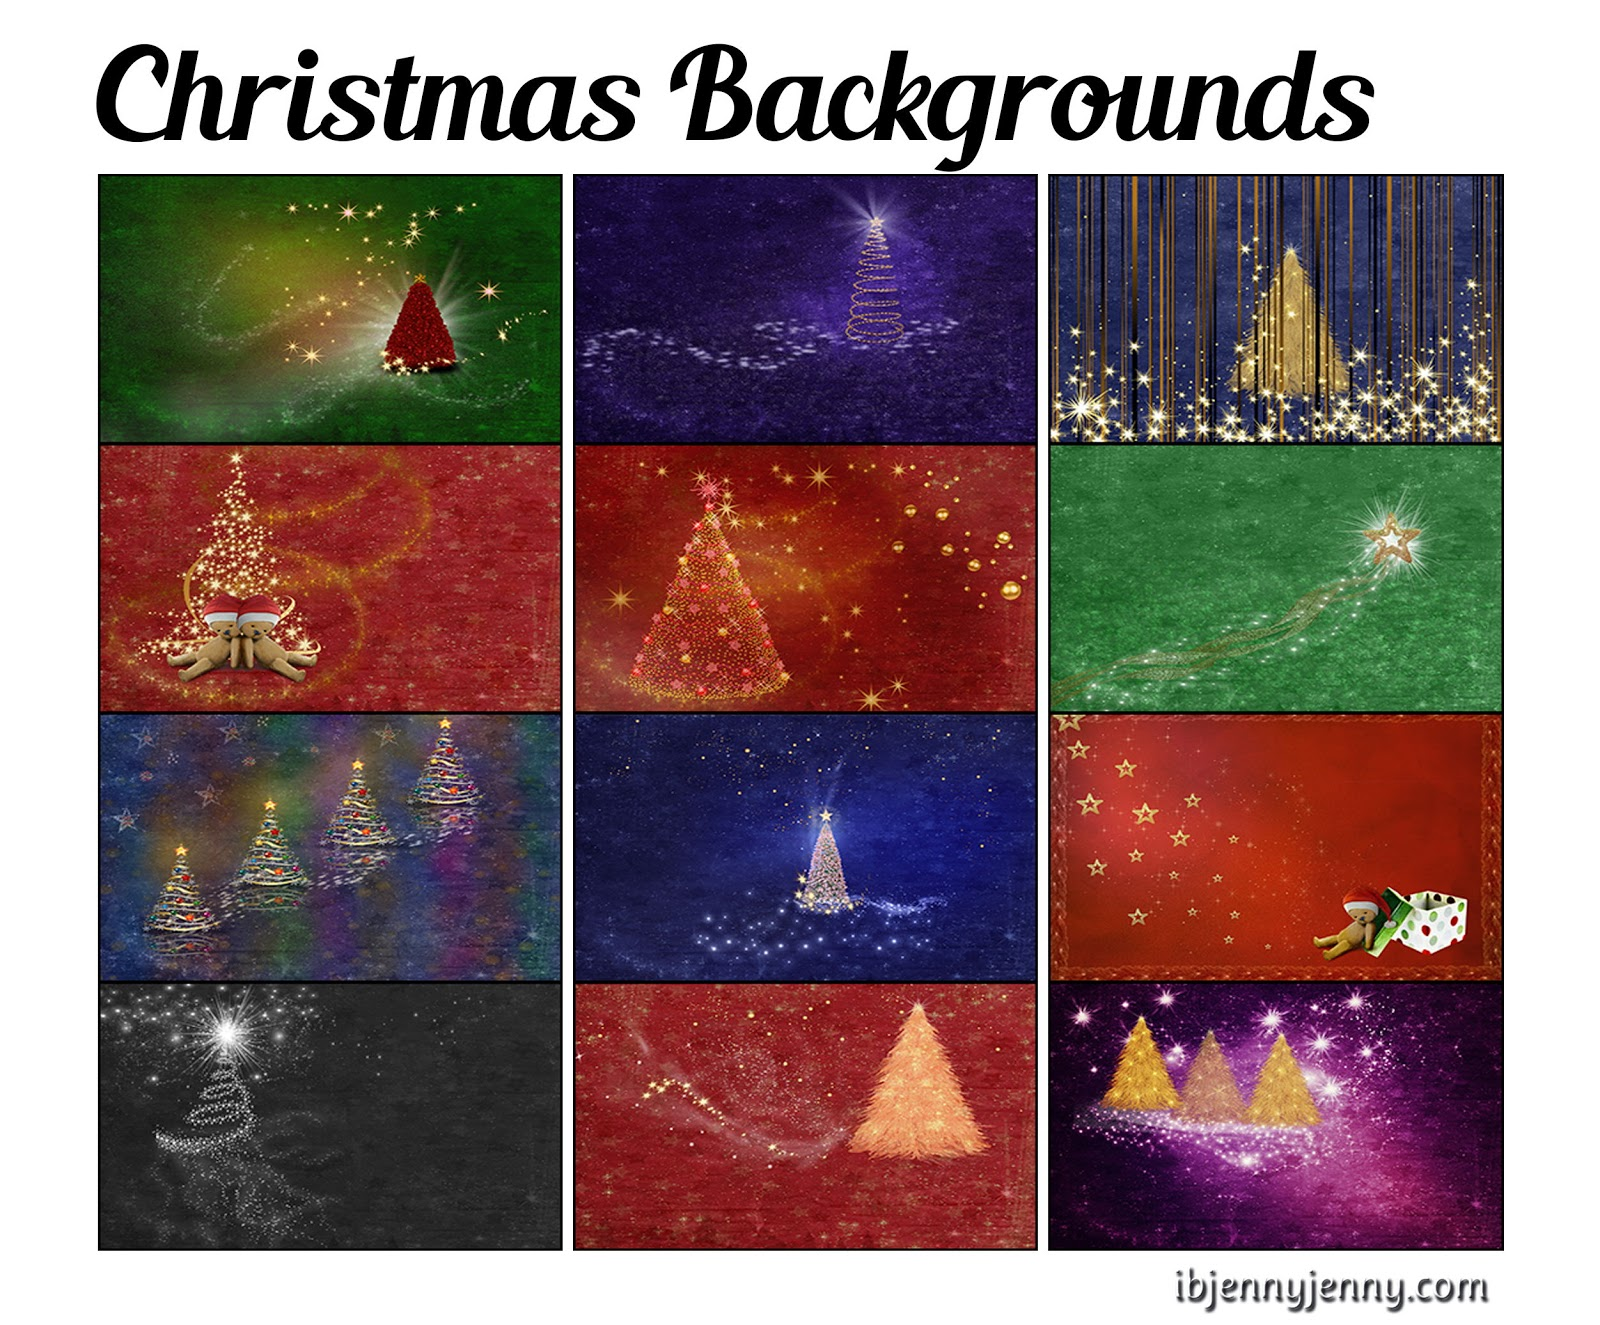 Christmas Backgrounds by ibjennyjenny